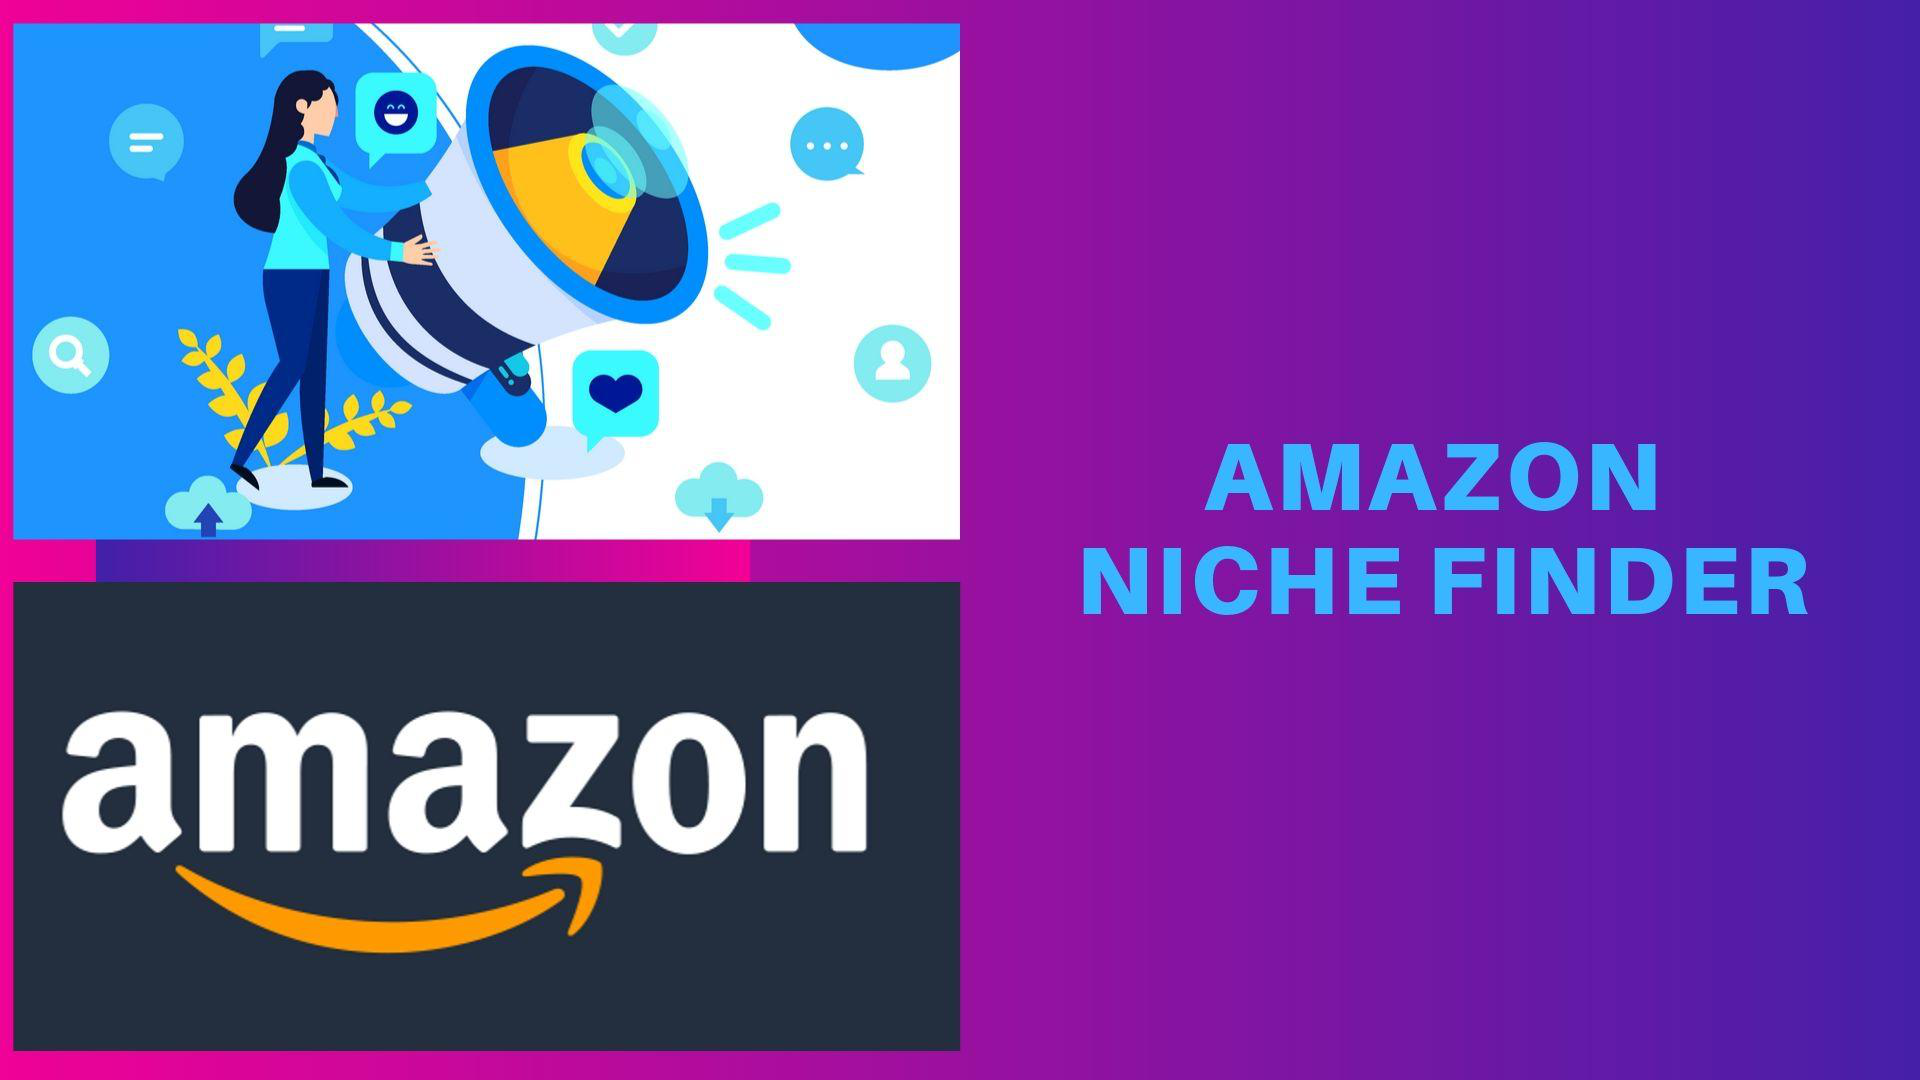 Amazon Niche Finder.png